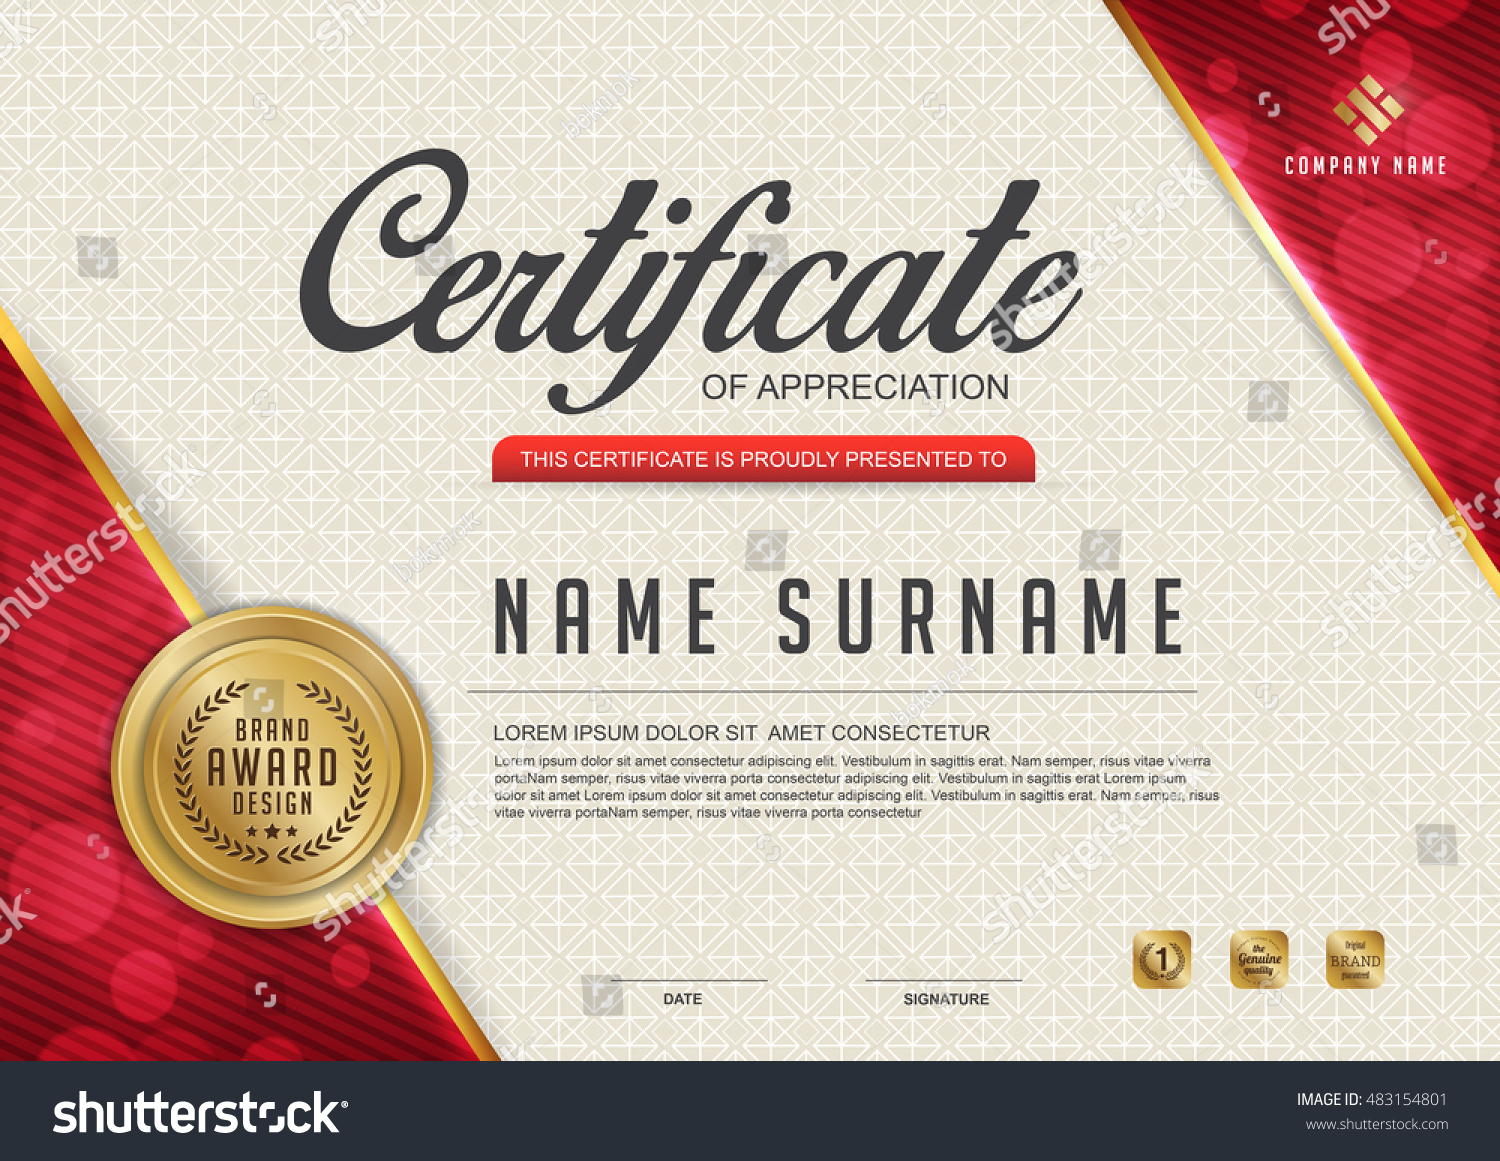 certificate template with Luxury pattern Vector illustration